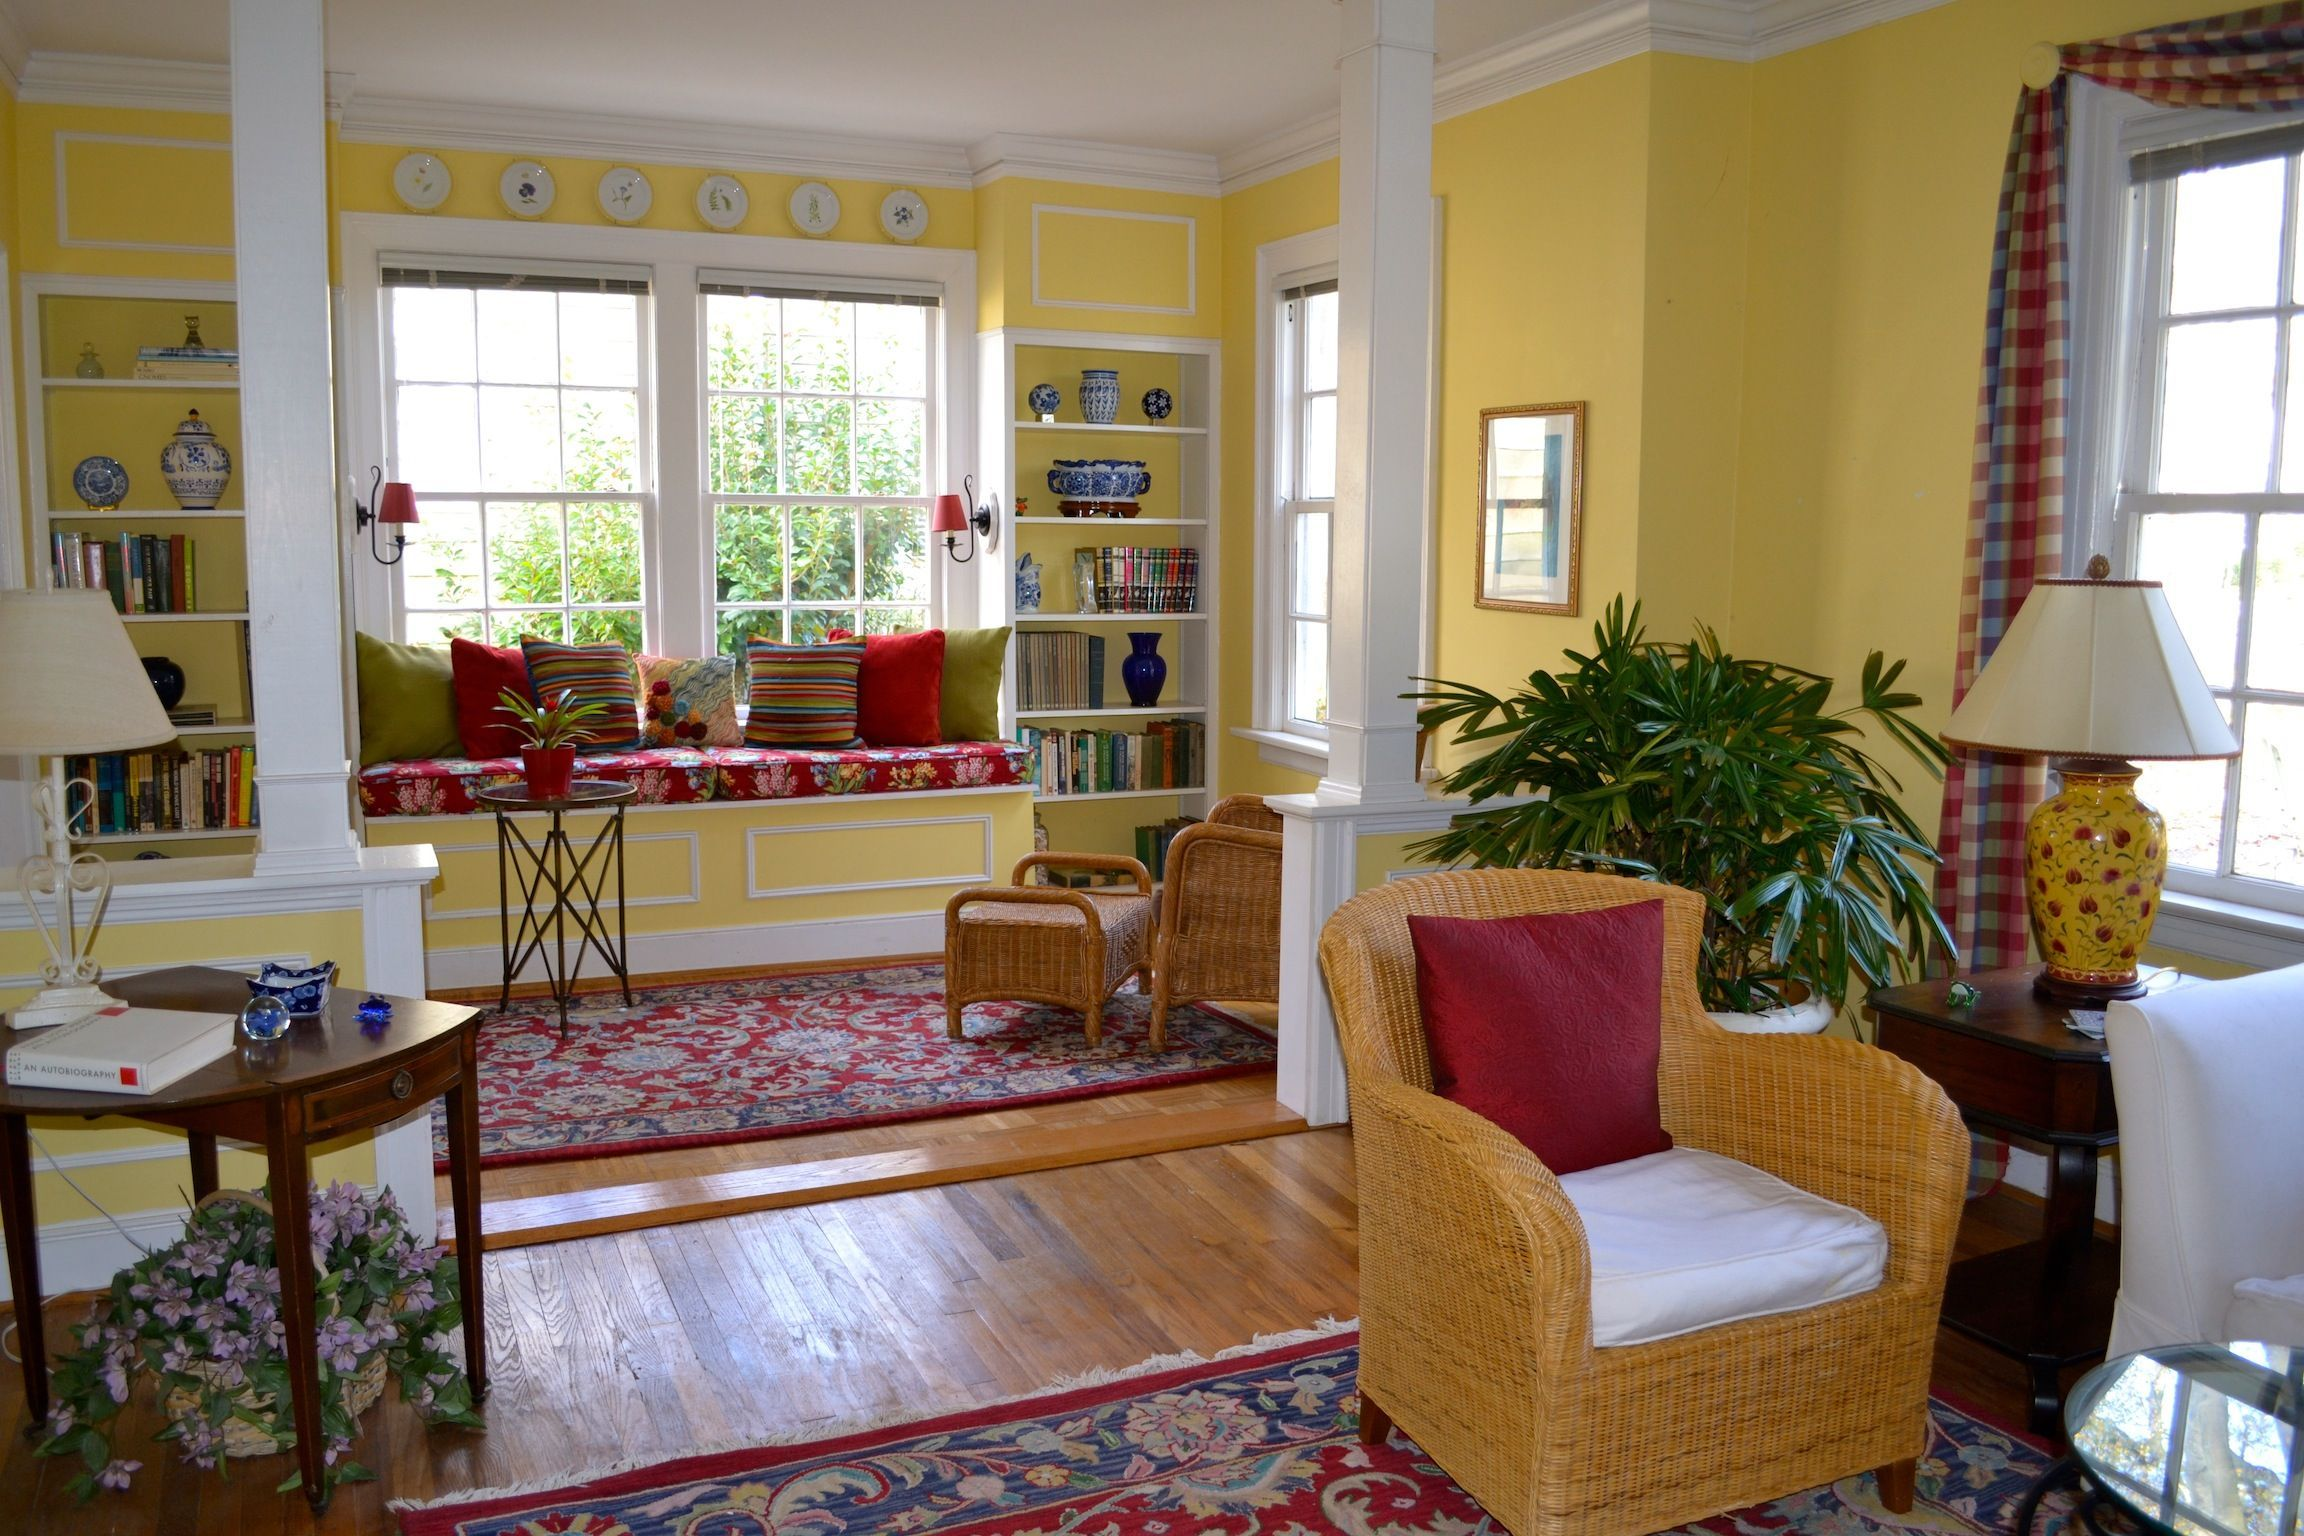 Bay Window Ideas Seat Cushions Home Design Decorating Kitchen Amazing Bay Window Ideas Living Room Decor Decorating Design